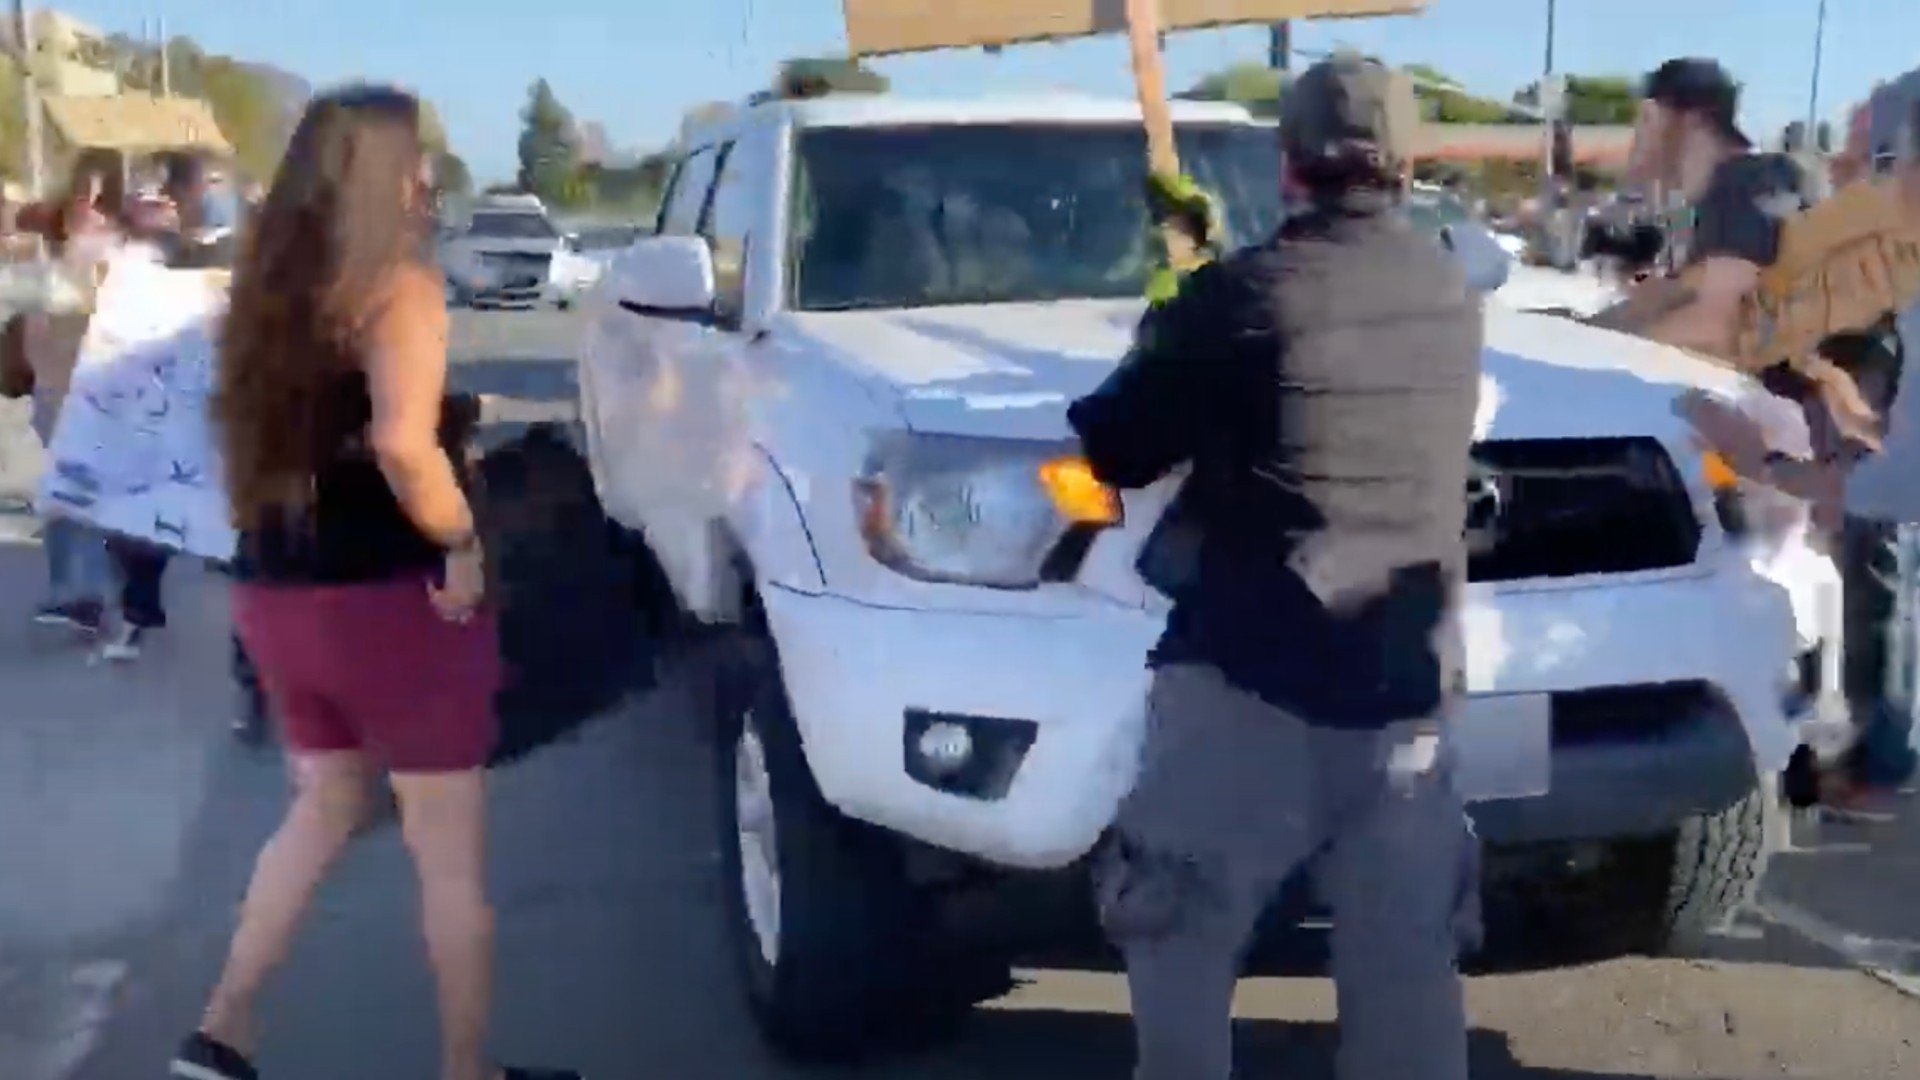 The Ventura County DA's office released video of a truck driving through a group of protesters on June 7, 2020. No charges were filed in the case.